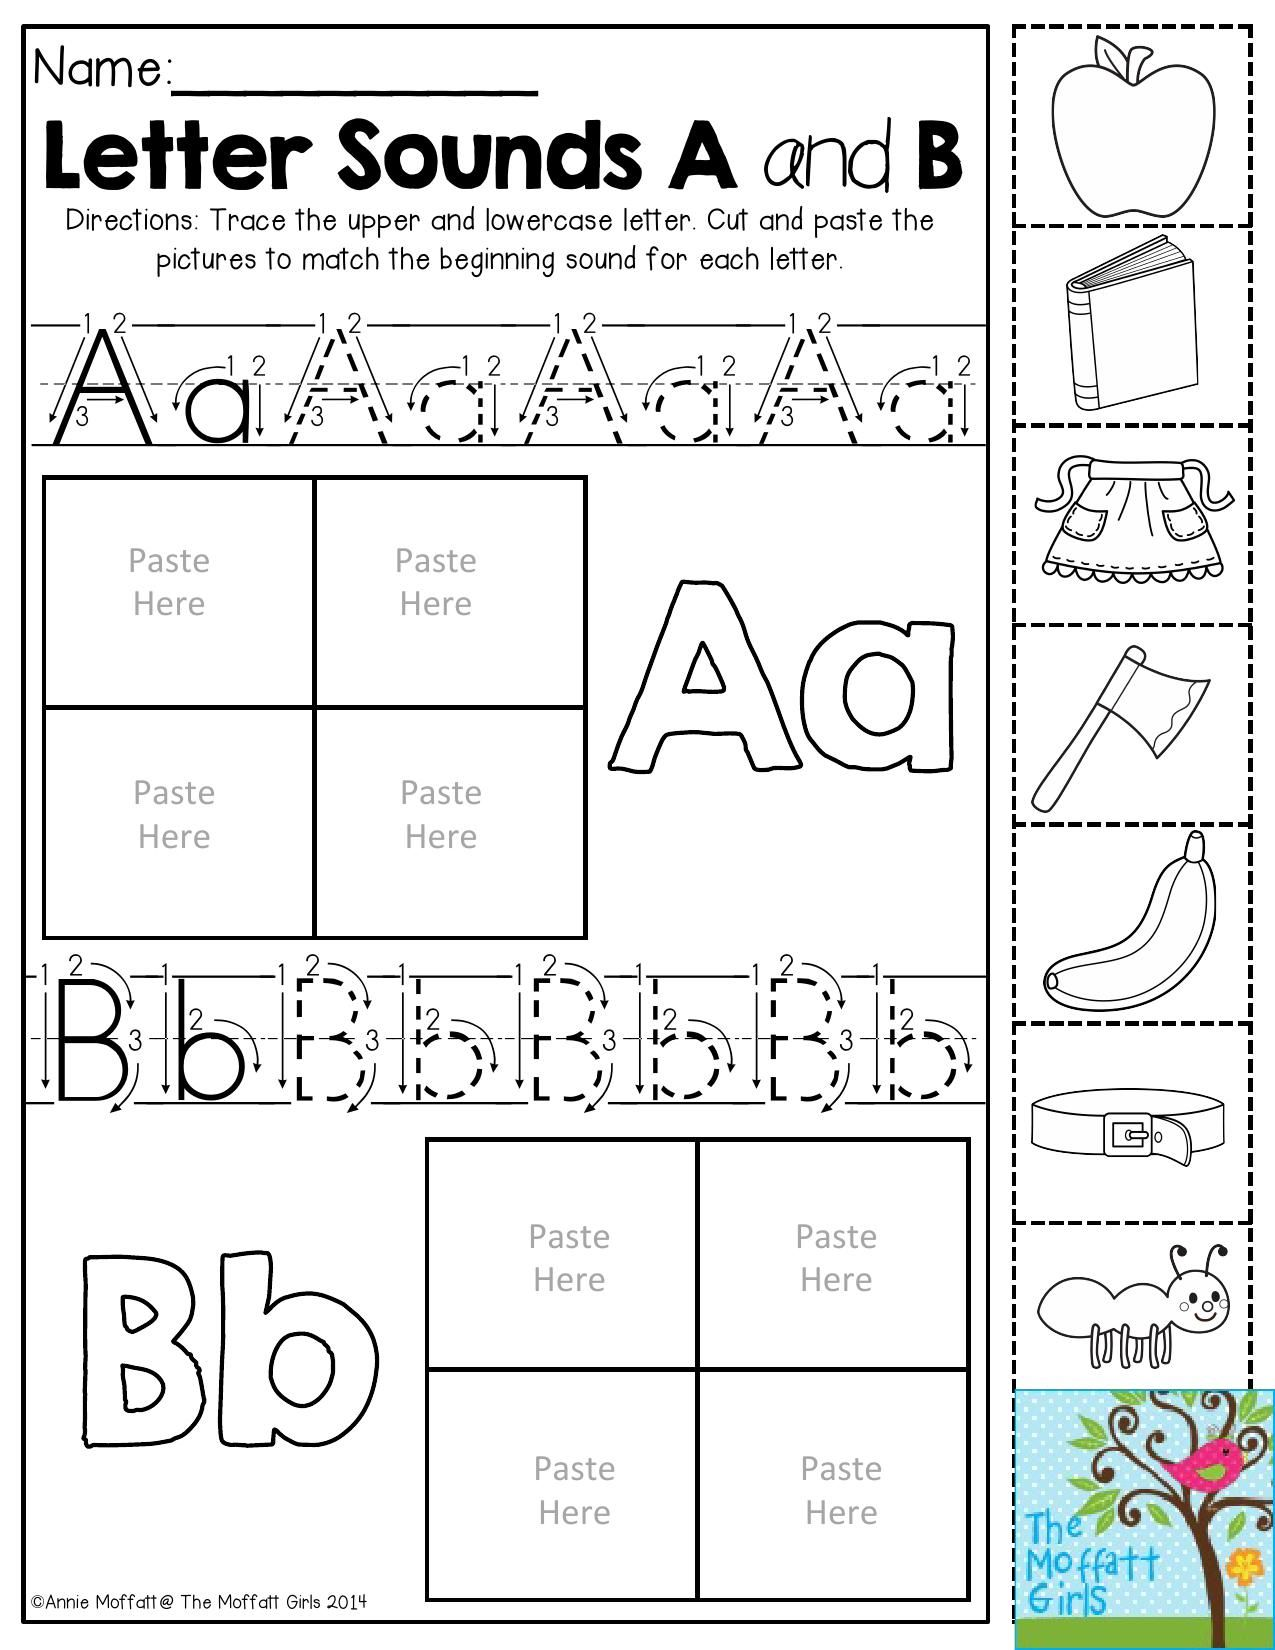 Letter Sounds- Trace the letters. Then cut and paste the ...